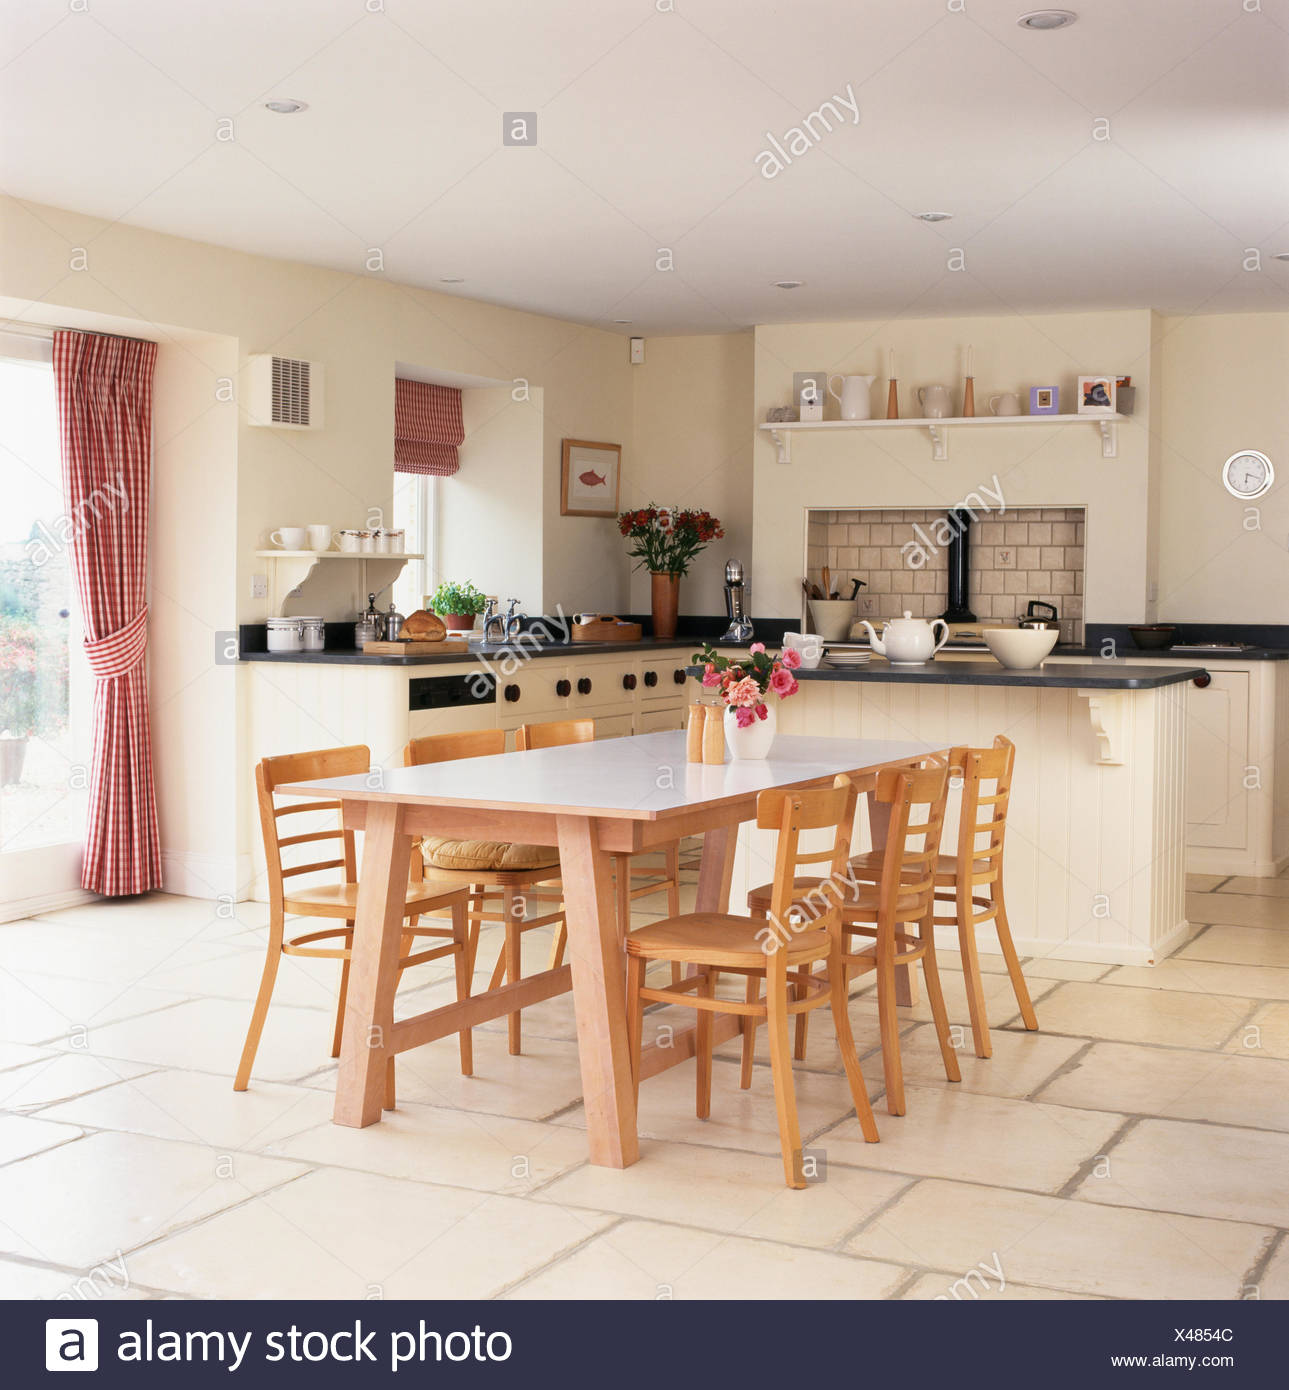 Genial Pale Wood Chairs And Table In Modern Kitchen Dining Room With Limestone  Tiled Floor